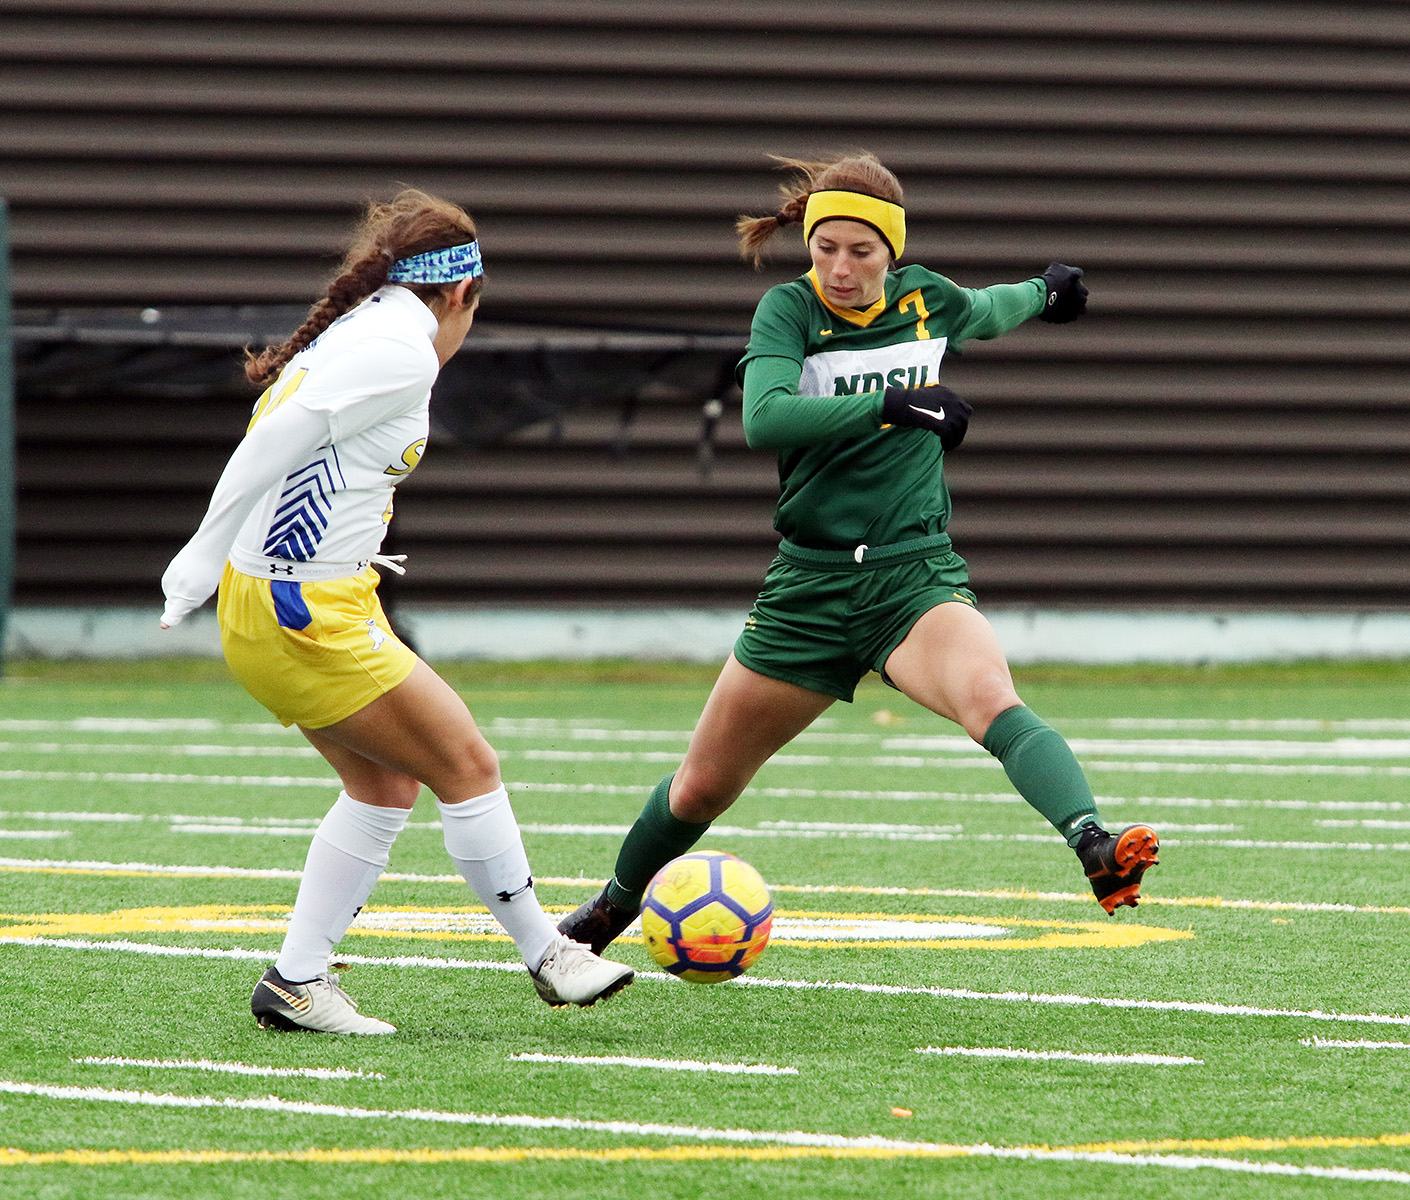 womens non conference soccer action - HD1410×1200